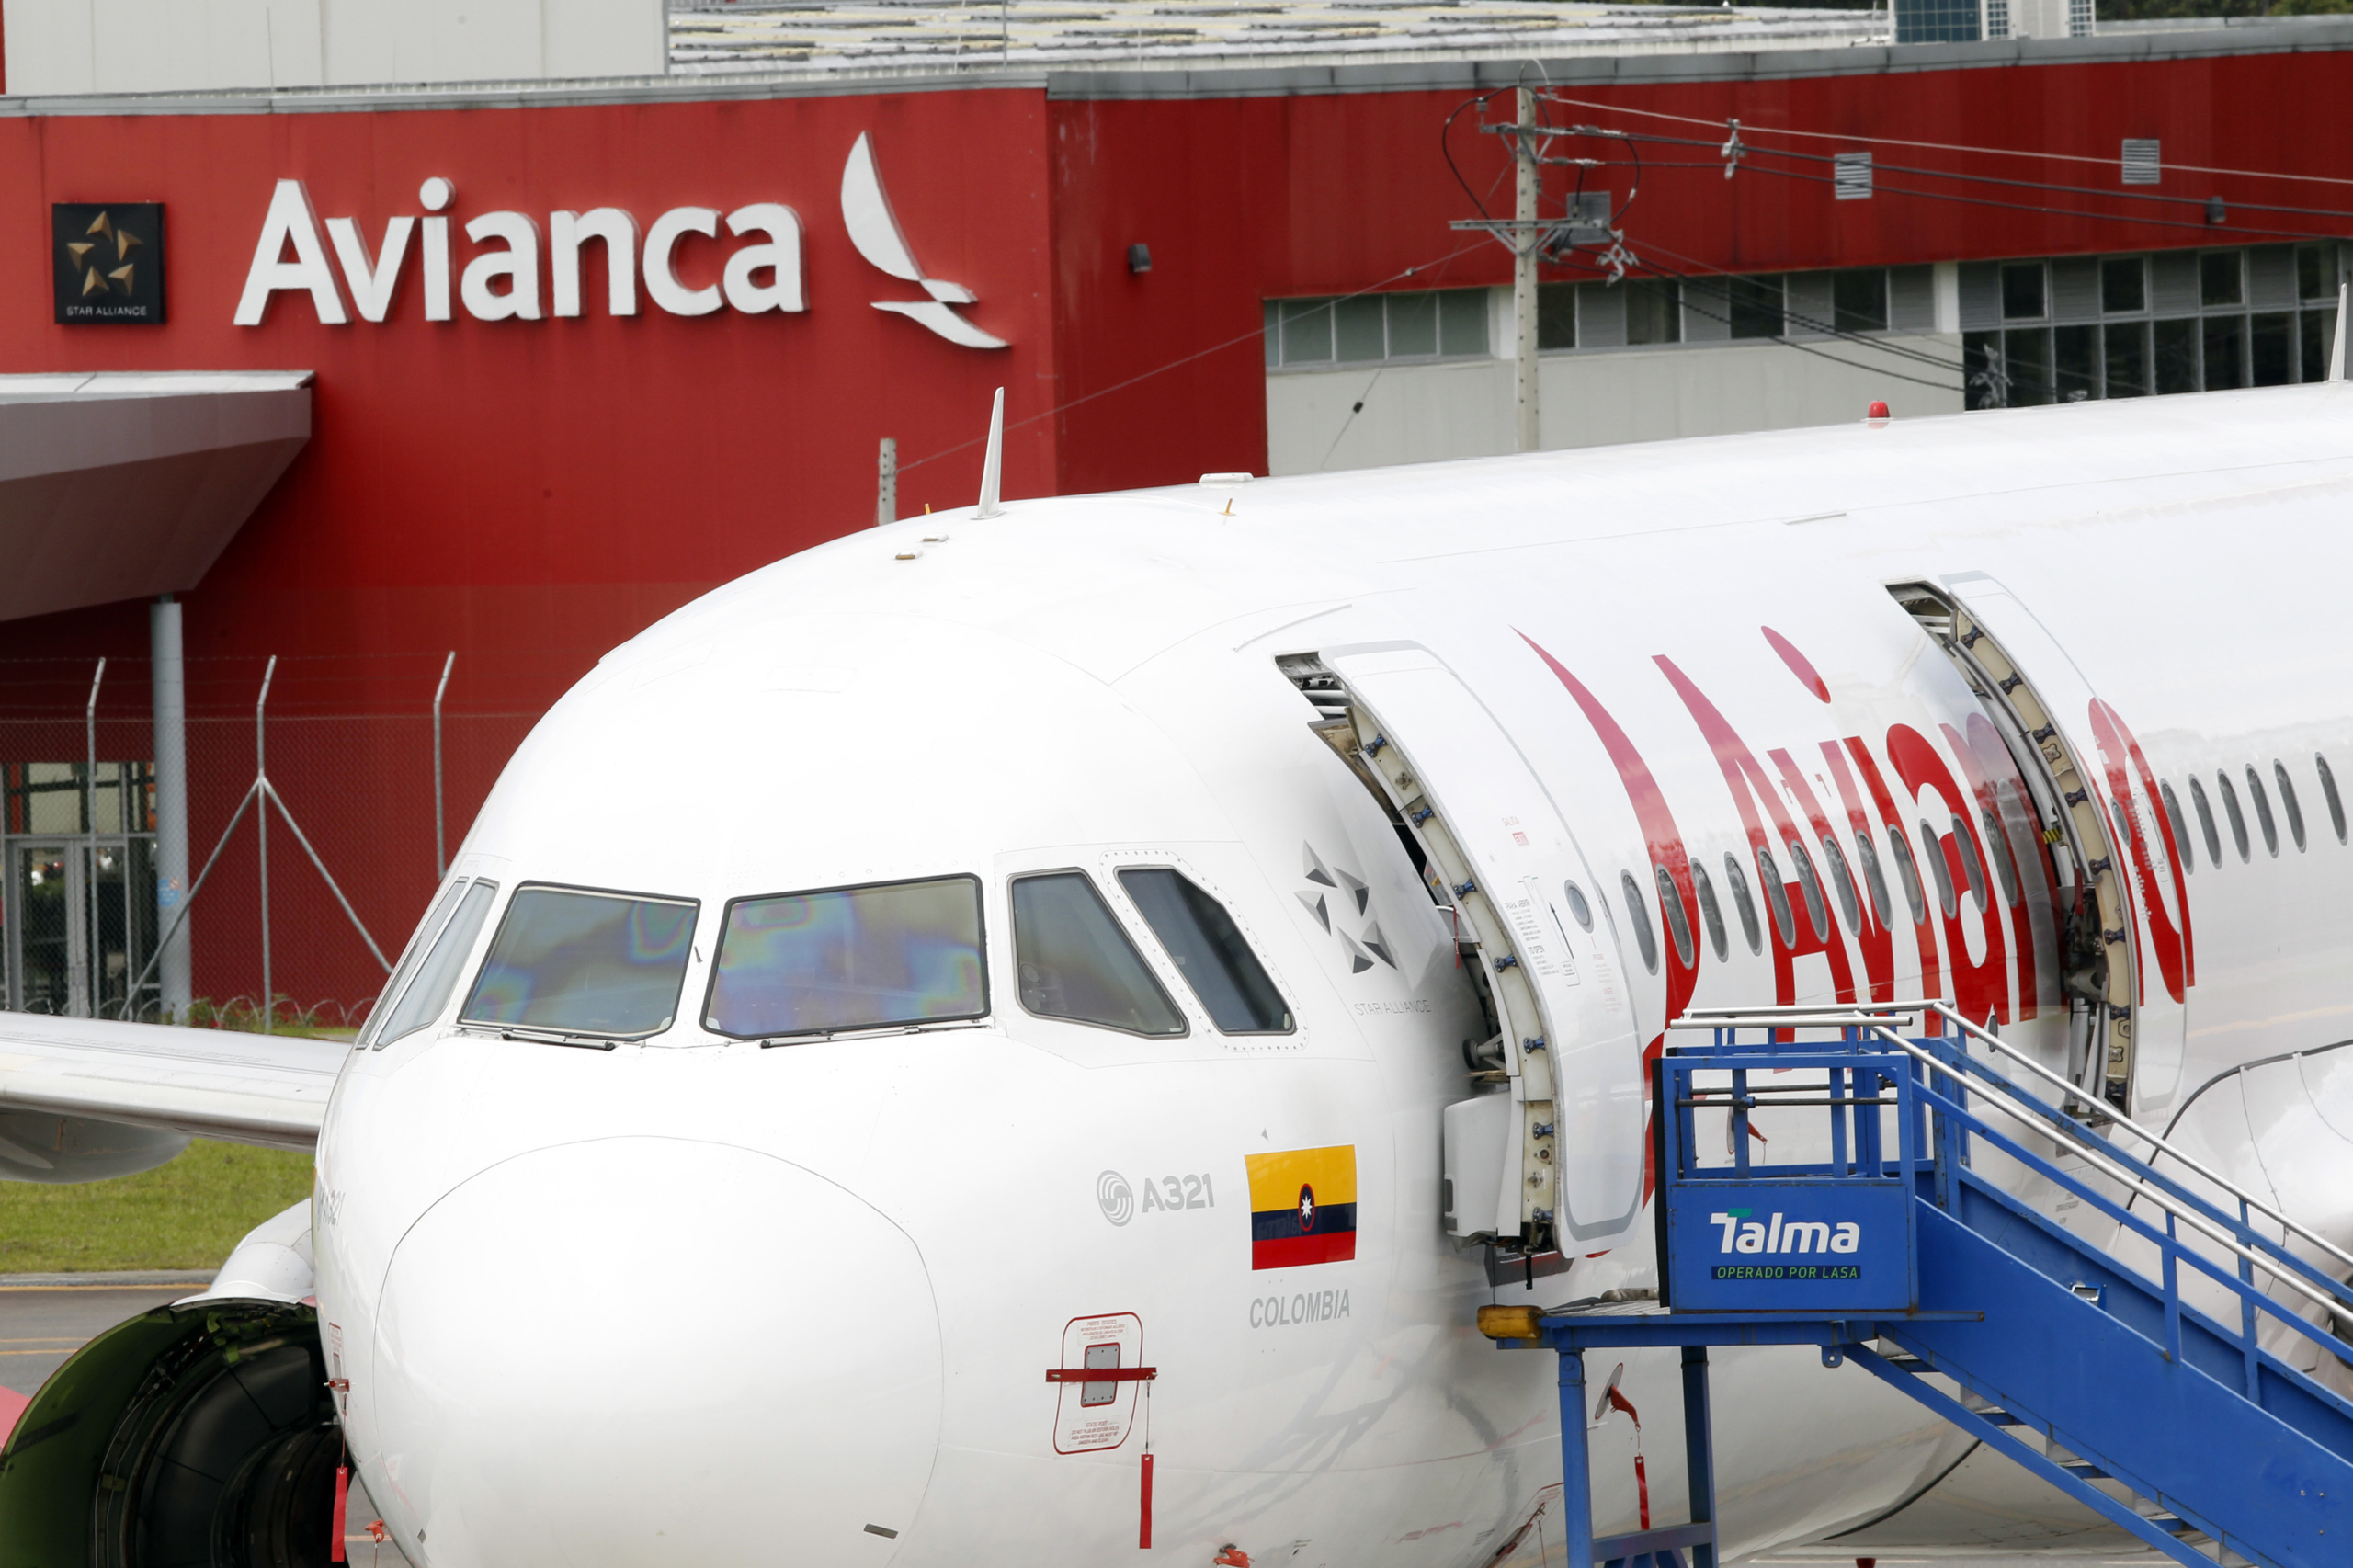 Huge Expansion: Avianca Reveals 23 New Routes Across The Americas